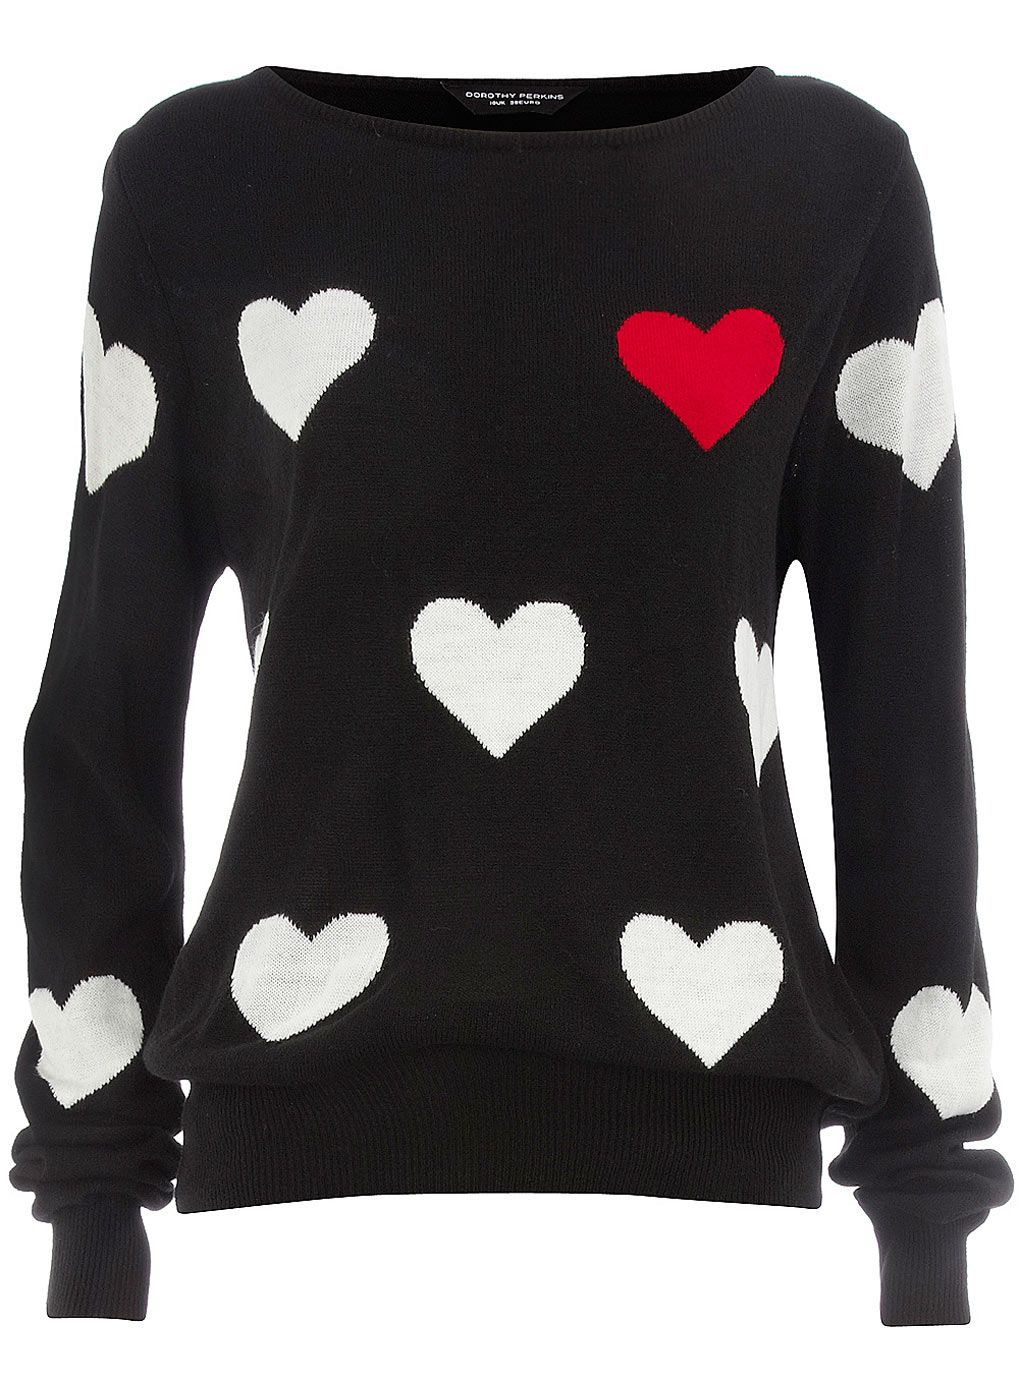 Heart sweater | Outstanding Outfits for Ordinary to Extraordinary ...